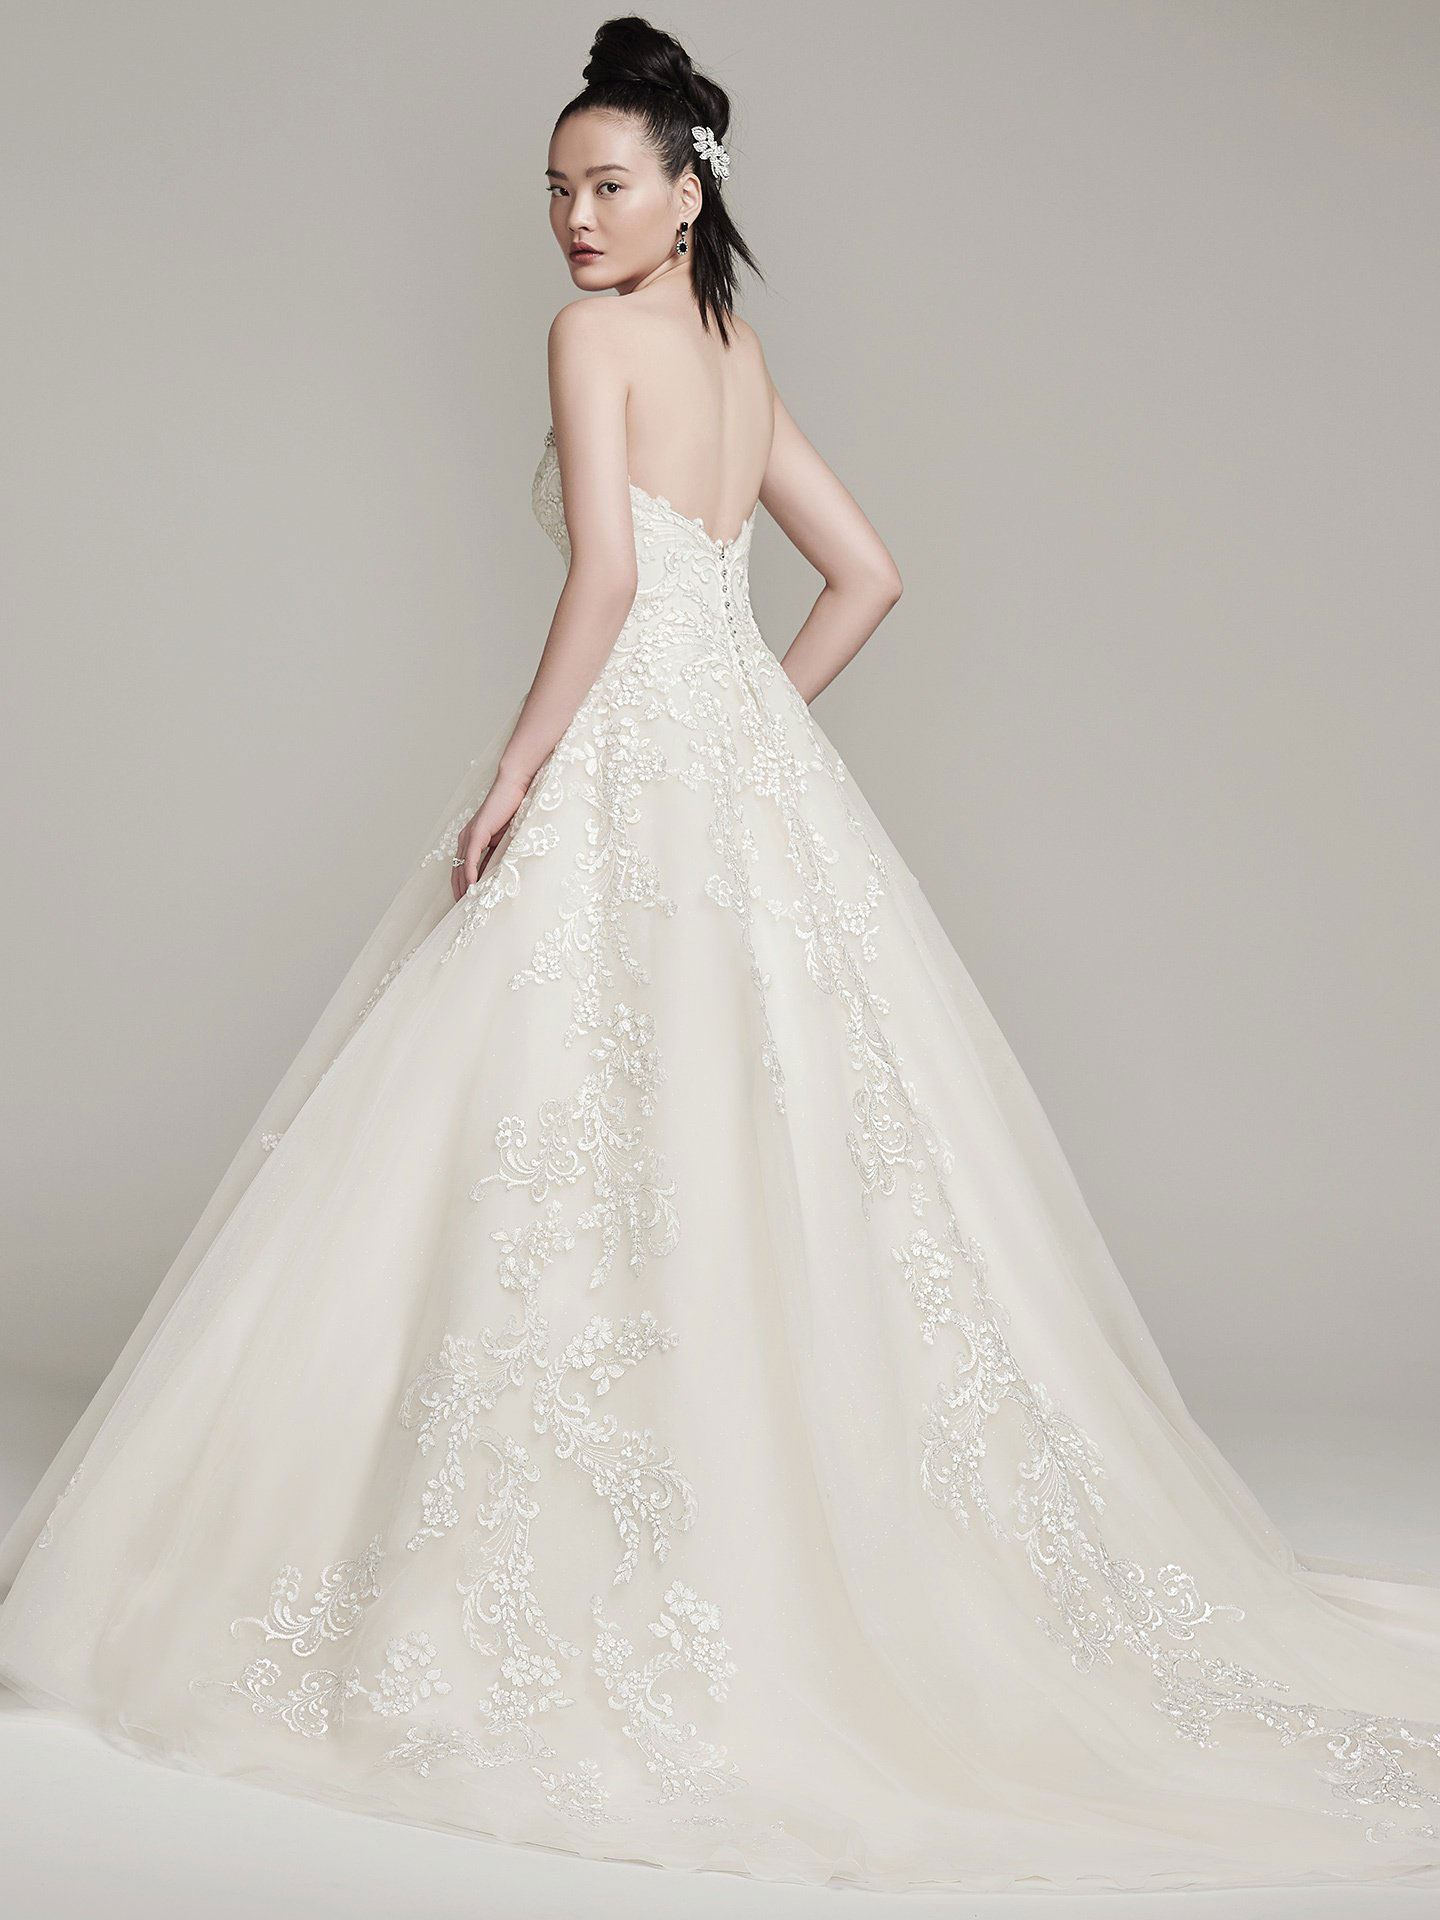 Sottero & Midgley <br> Olga <br> Size 14 Was £1,580 Now £900